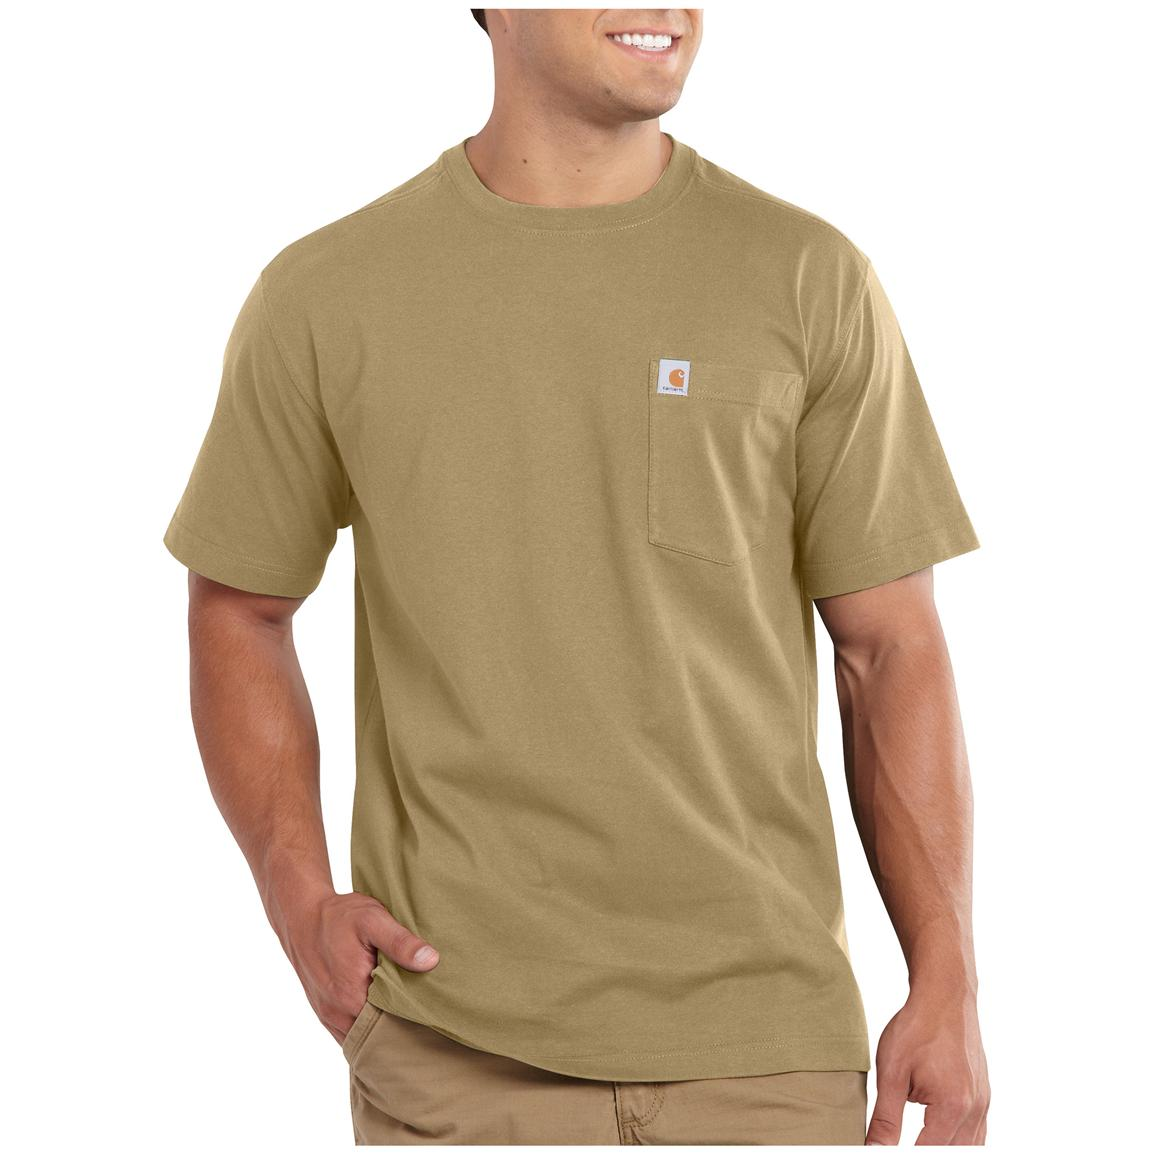 Carhartt Maddock Pocket Short-sleeve T-shirt, Dark Khaki